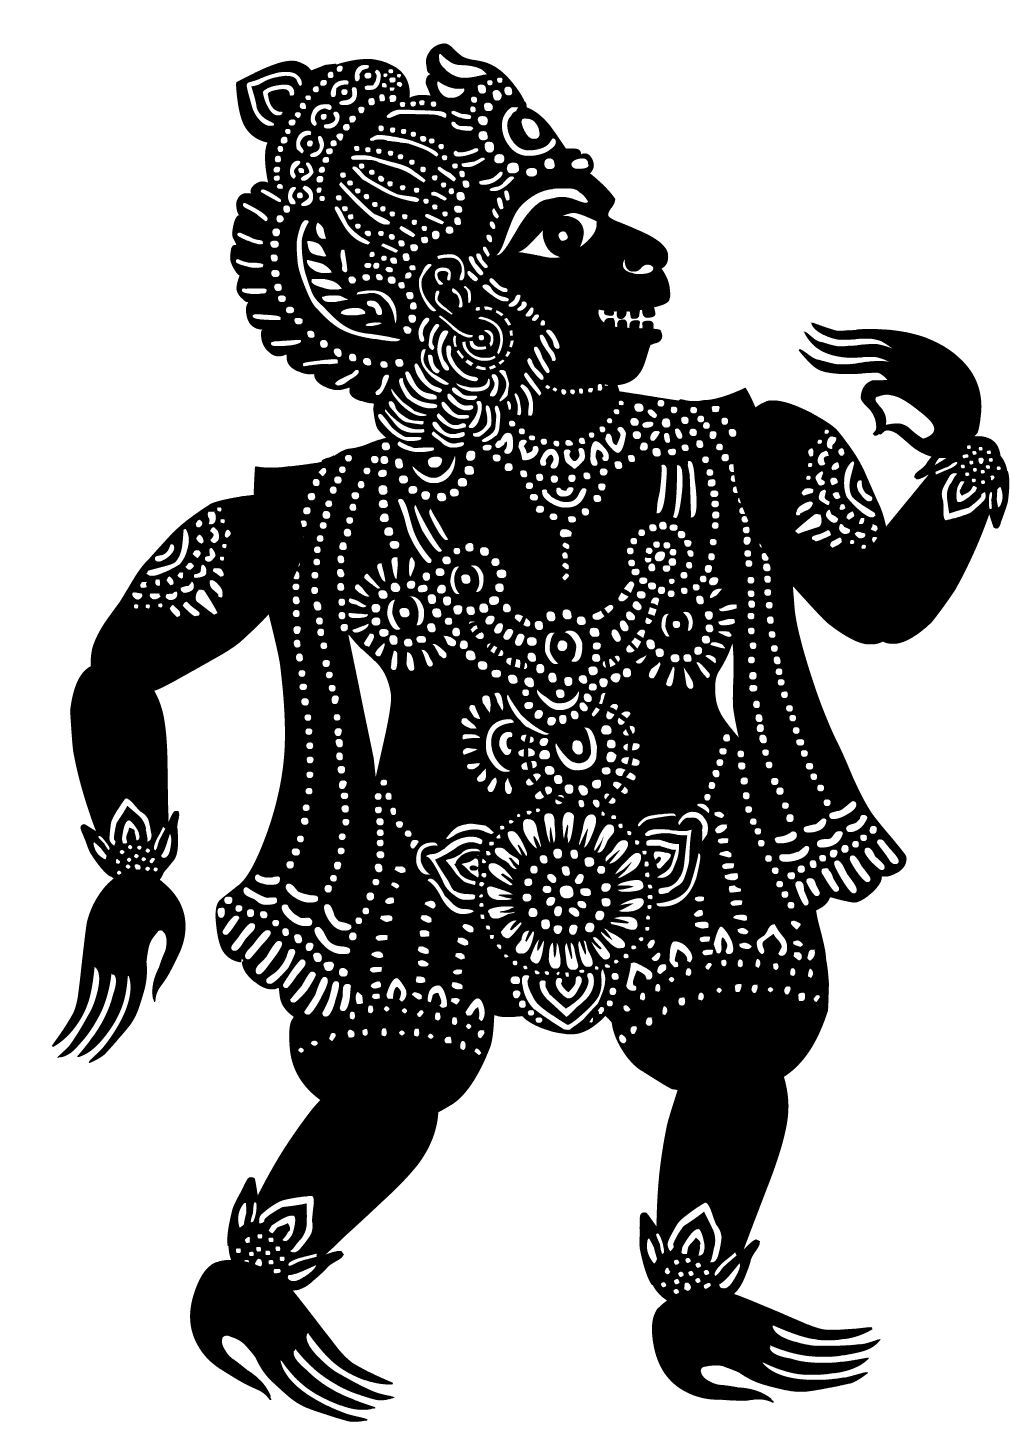 indonesian shadow puppet festival - Google Search | Festival Poster ...